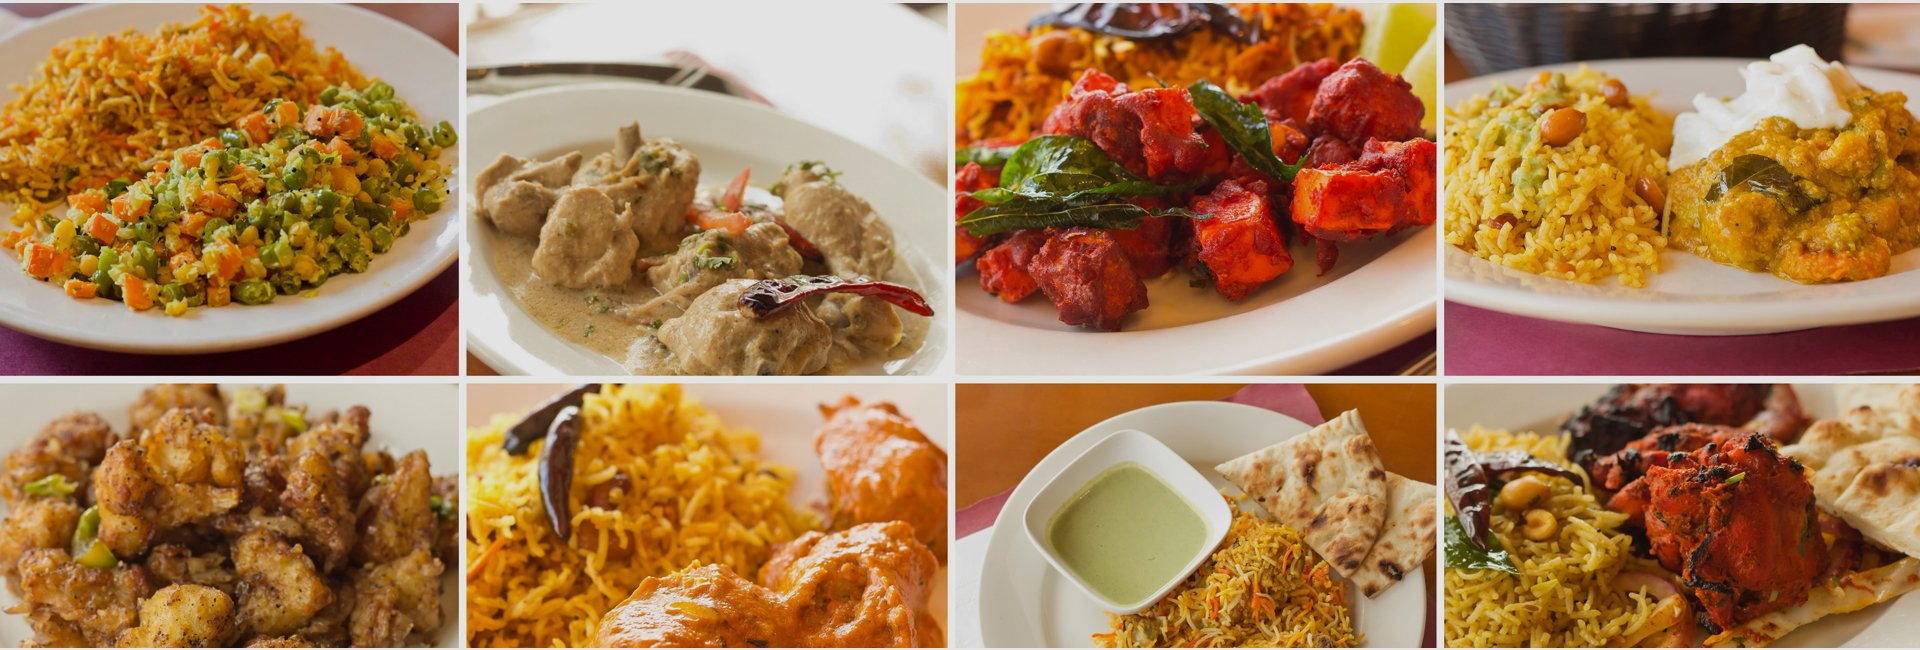 Gurus Fine Indian Cuisine Menu